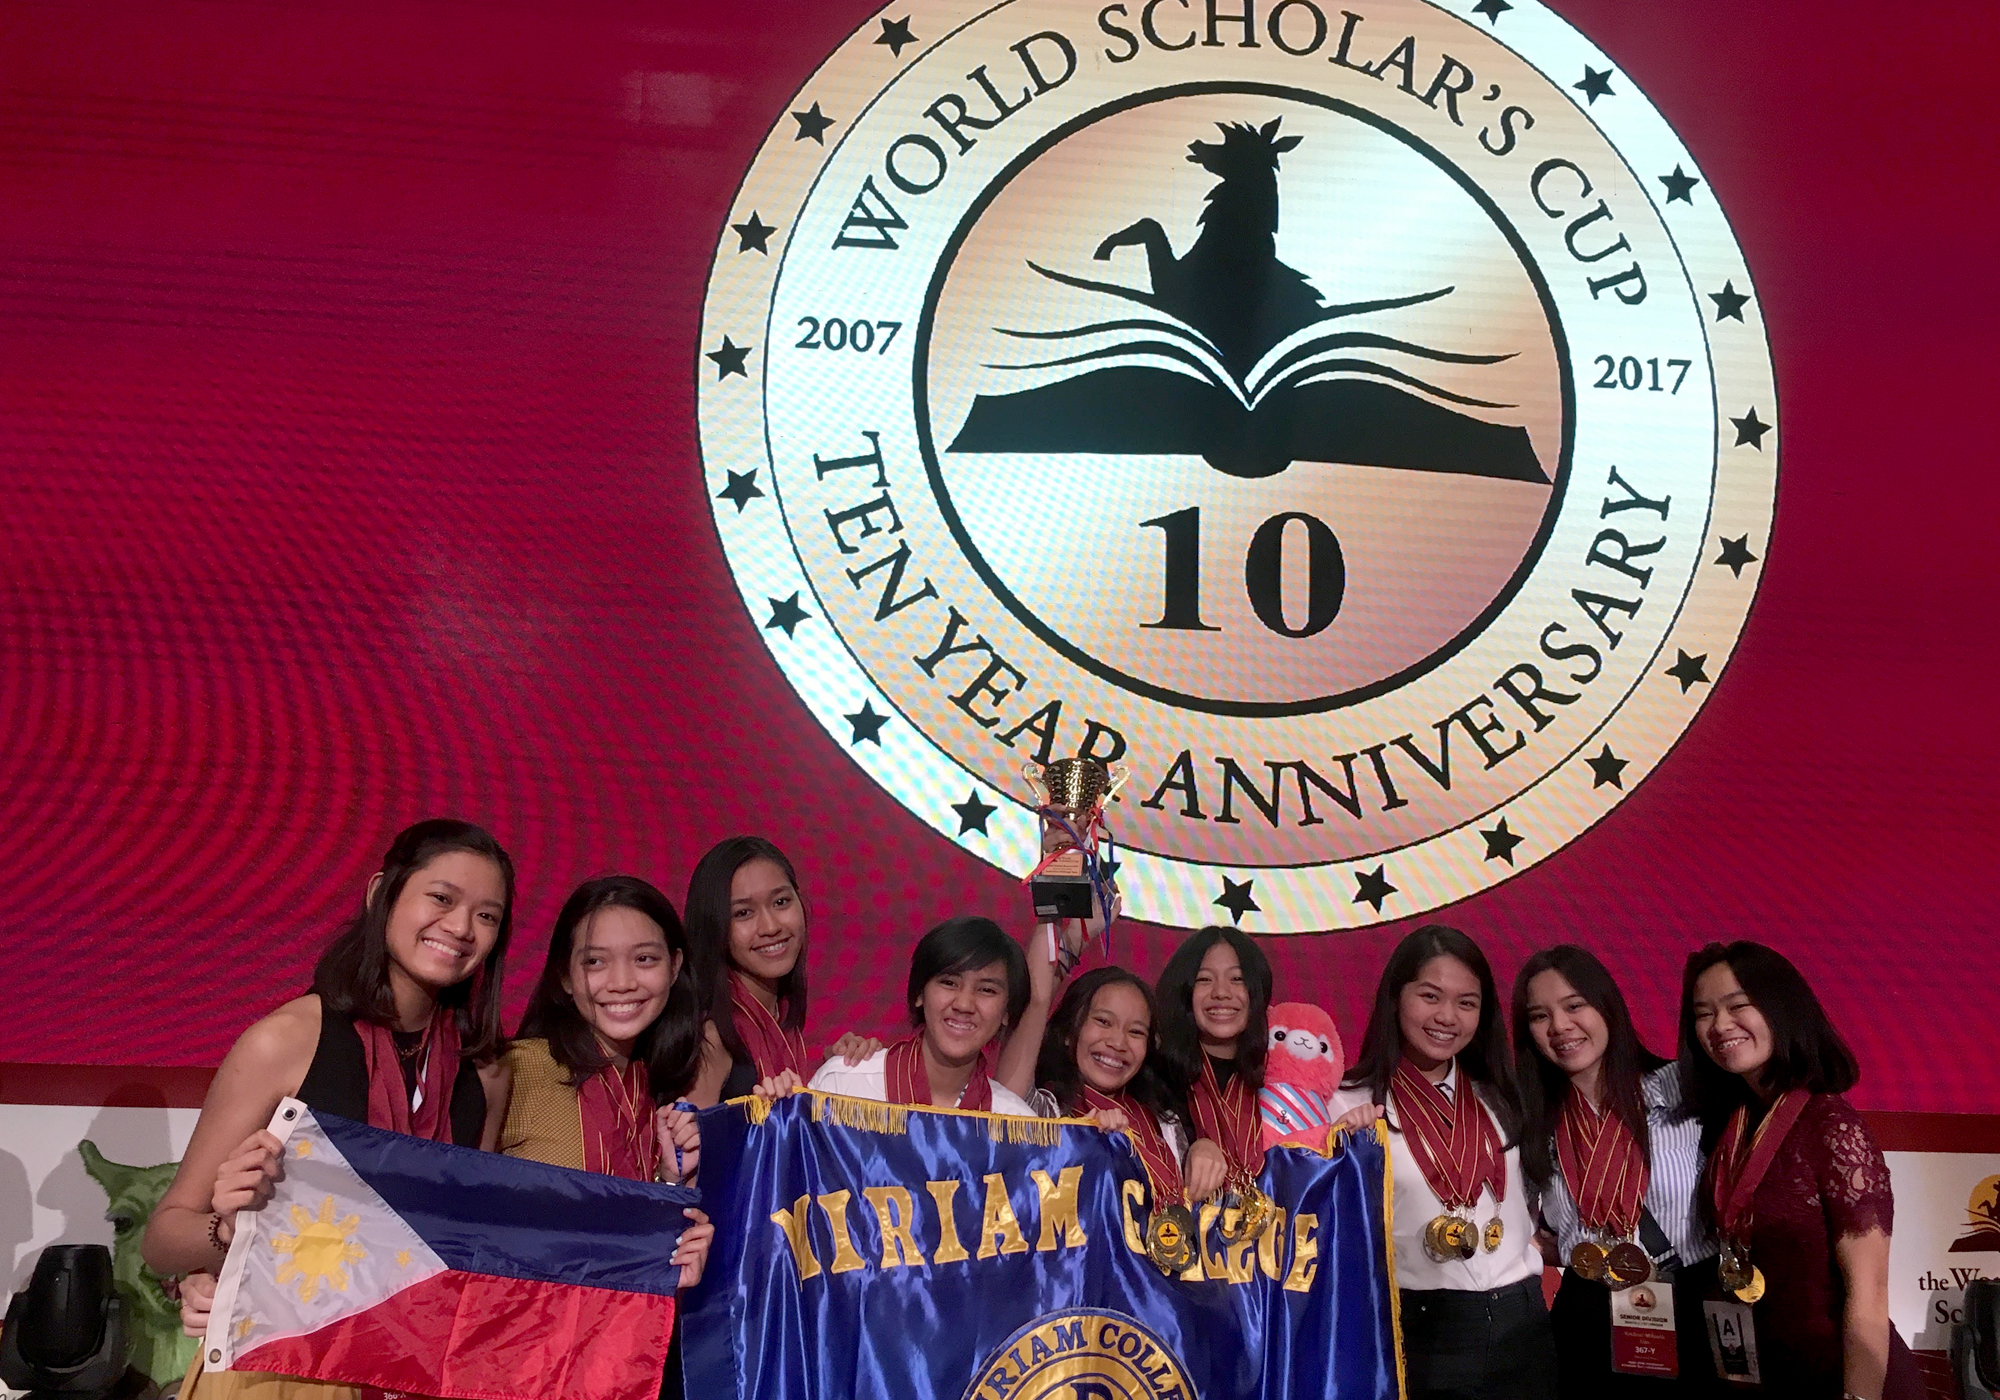 Miriam College Students shine in the global round of the World Scholar's Cup | Philippine Daily Inquirer